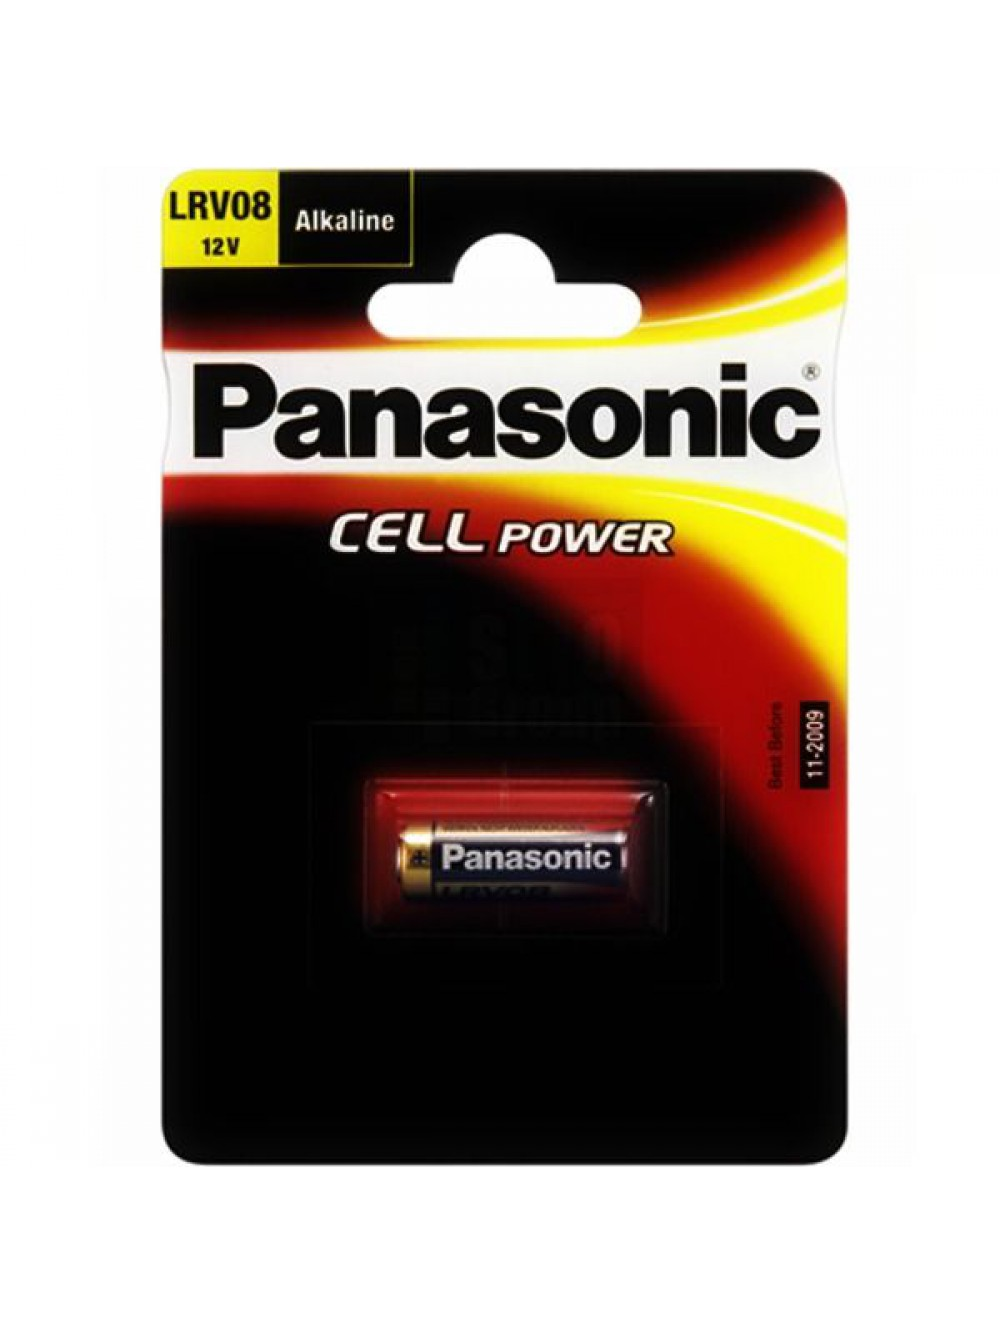 PILA LRV08 ALCALINA PANASONIC POWERCELLS